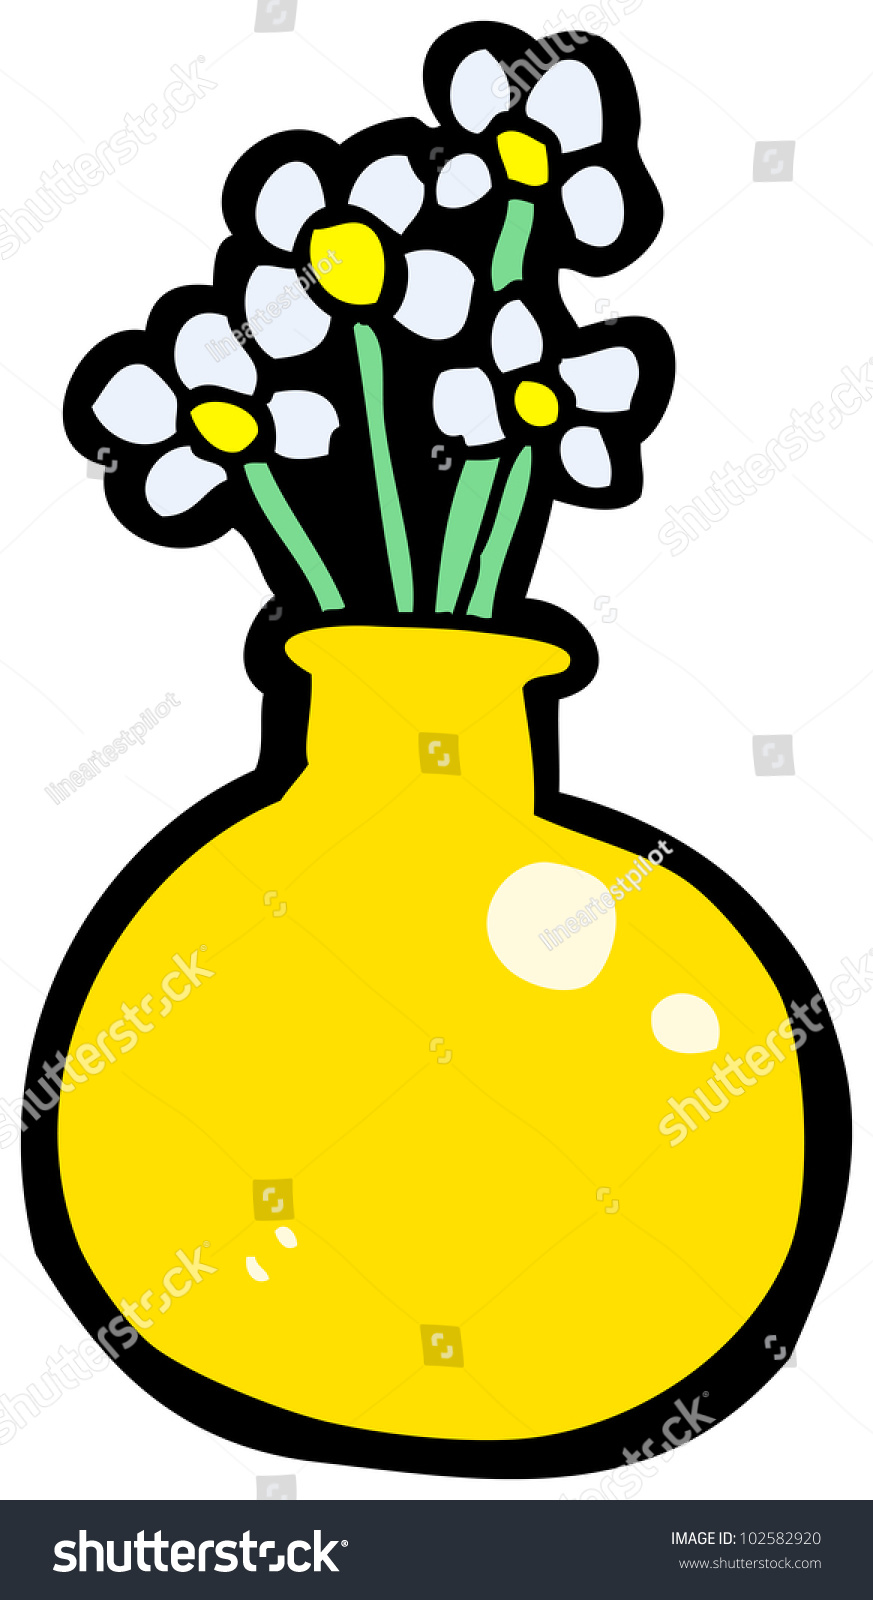 flower vase drawing images with Stock Photo Cartoon Flowers In Vase on Rose Love Flower Drawing Hoontoidly Rose Love Drawing Images furthermore Flower Line Drawing Tumblr besides Stock Illustration Vintage Vase Flowers Hand Drawn Sketch Illustration Isolated White Background Image79818107 further Fillers And Other Flowers as well Grass Drawing.